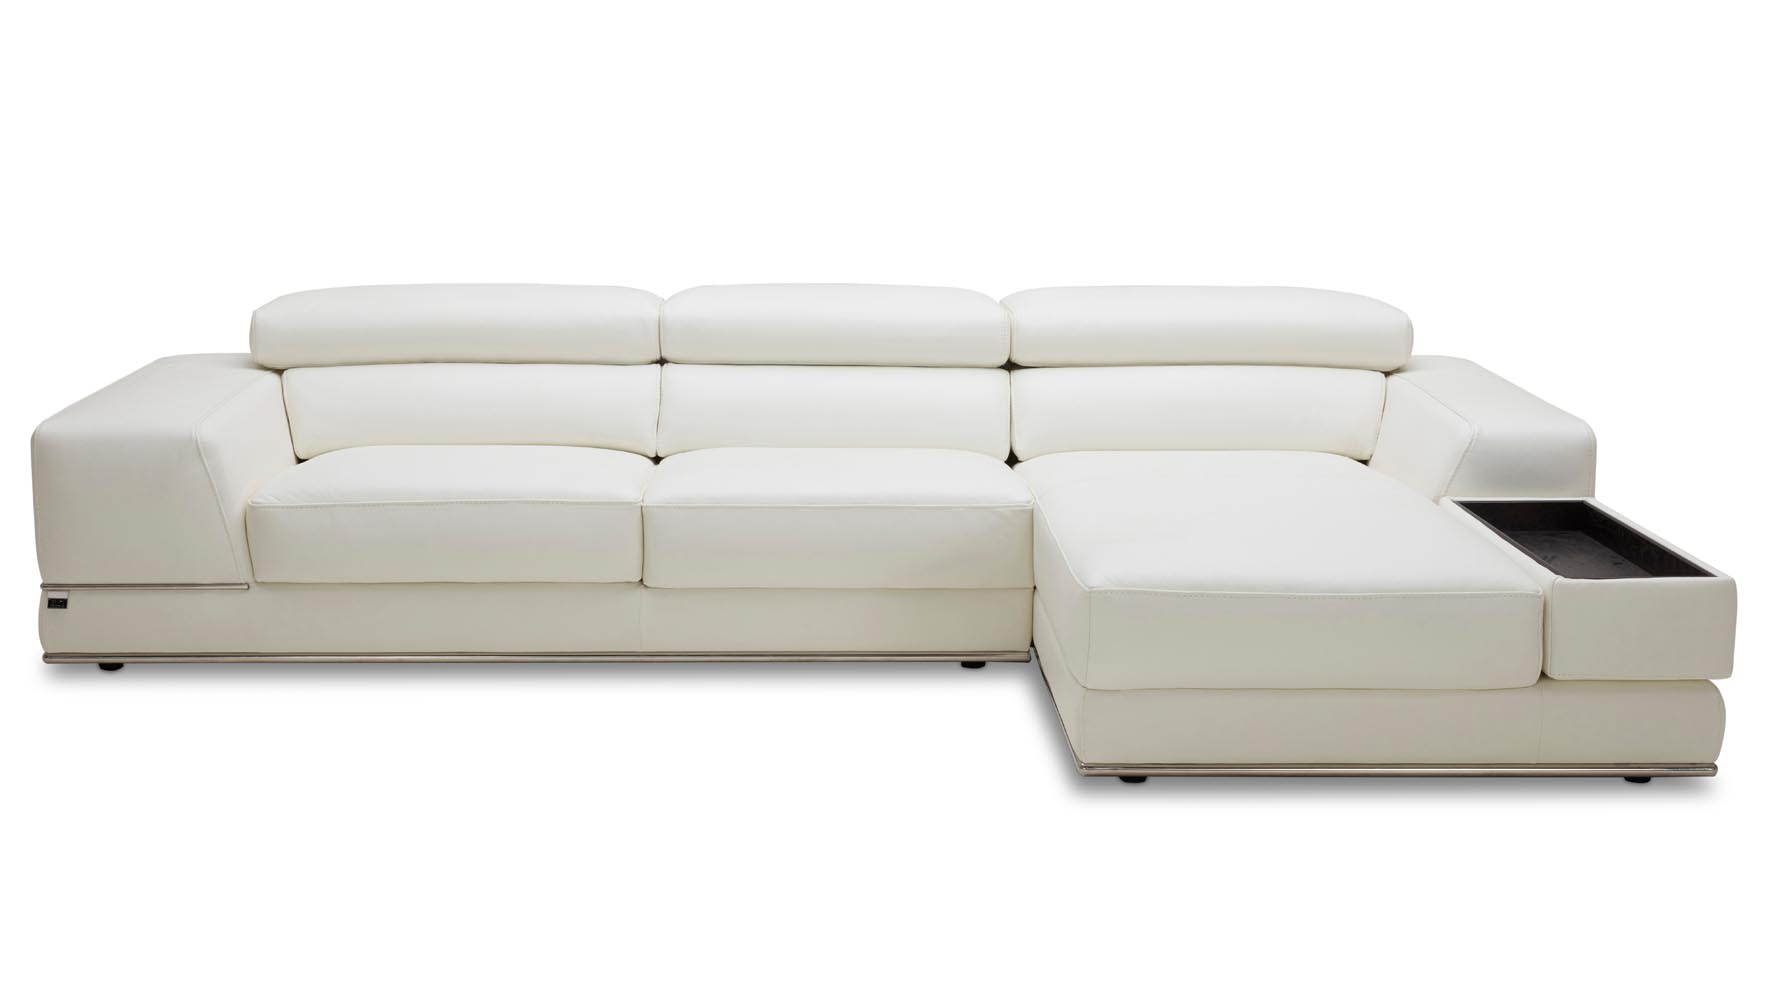 white leather chaise encore white leather sectional sofa zuri furniture 21984 | encore white leather sofa right chaise 1